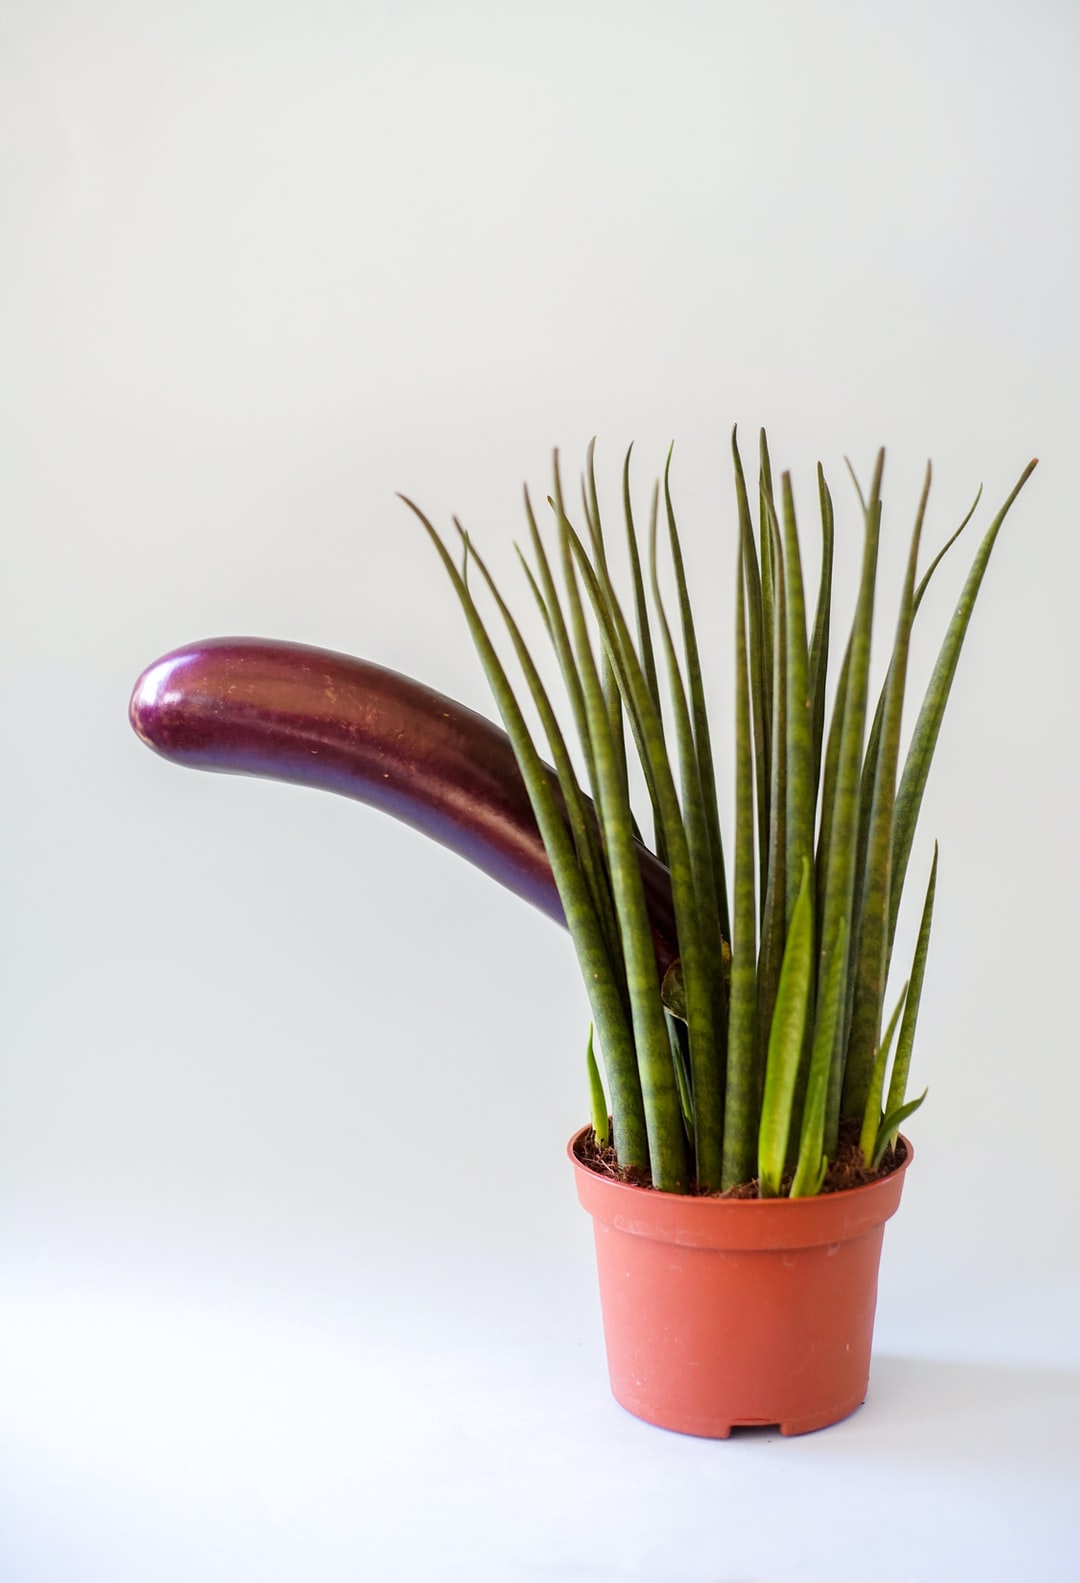 A plant with eggplant sticking out from grass looking like penis in erotic context. Unporn.